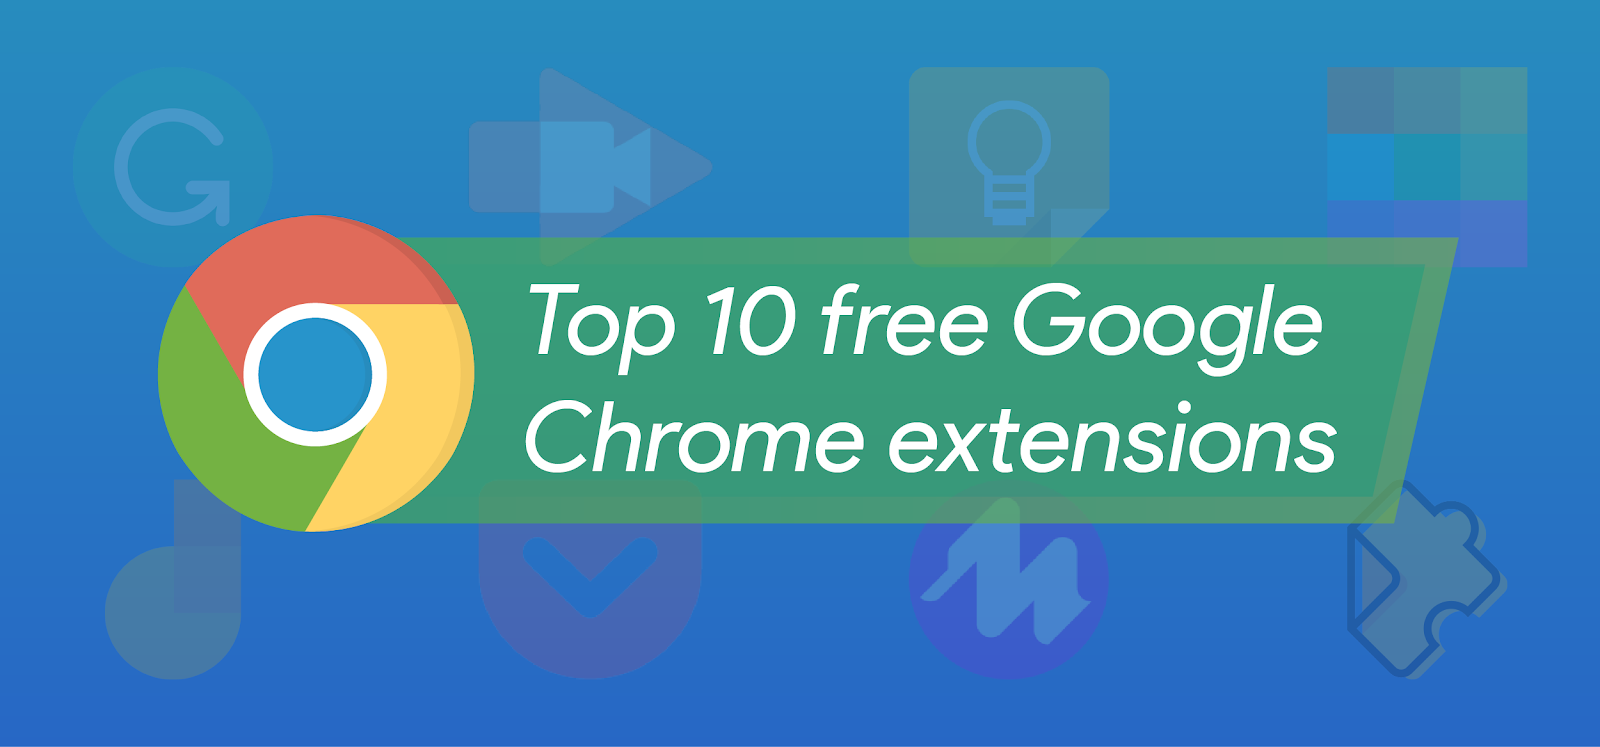 Top 10 Free Google Chrome Extensions for K-12 Teaching and Learning